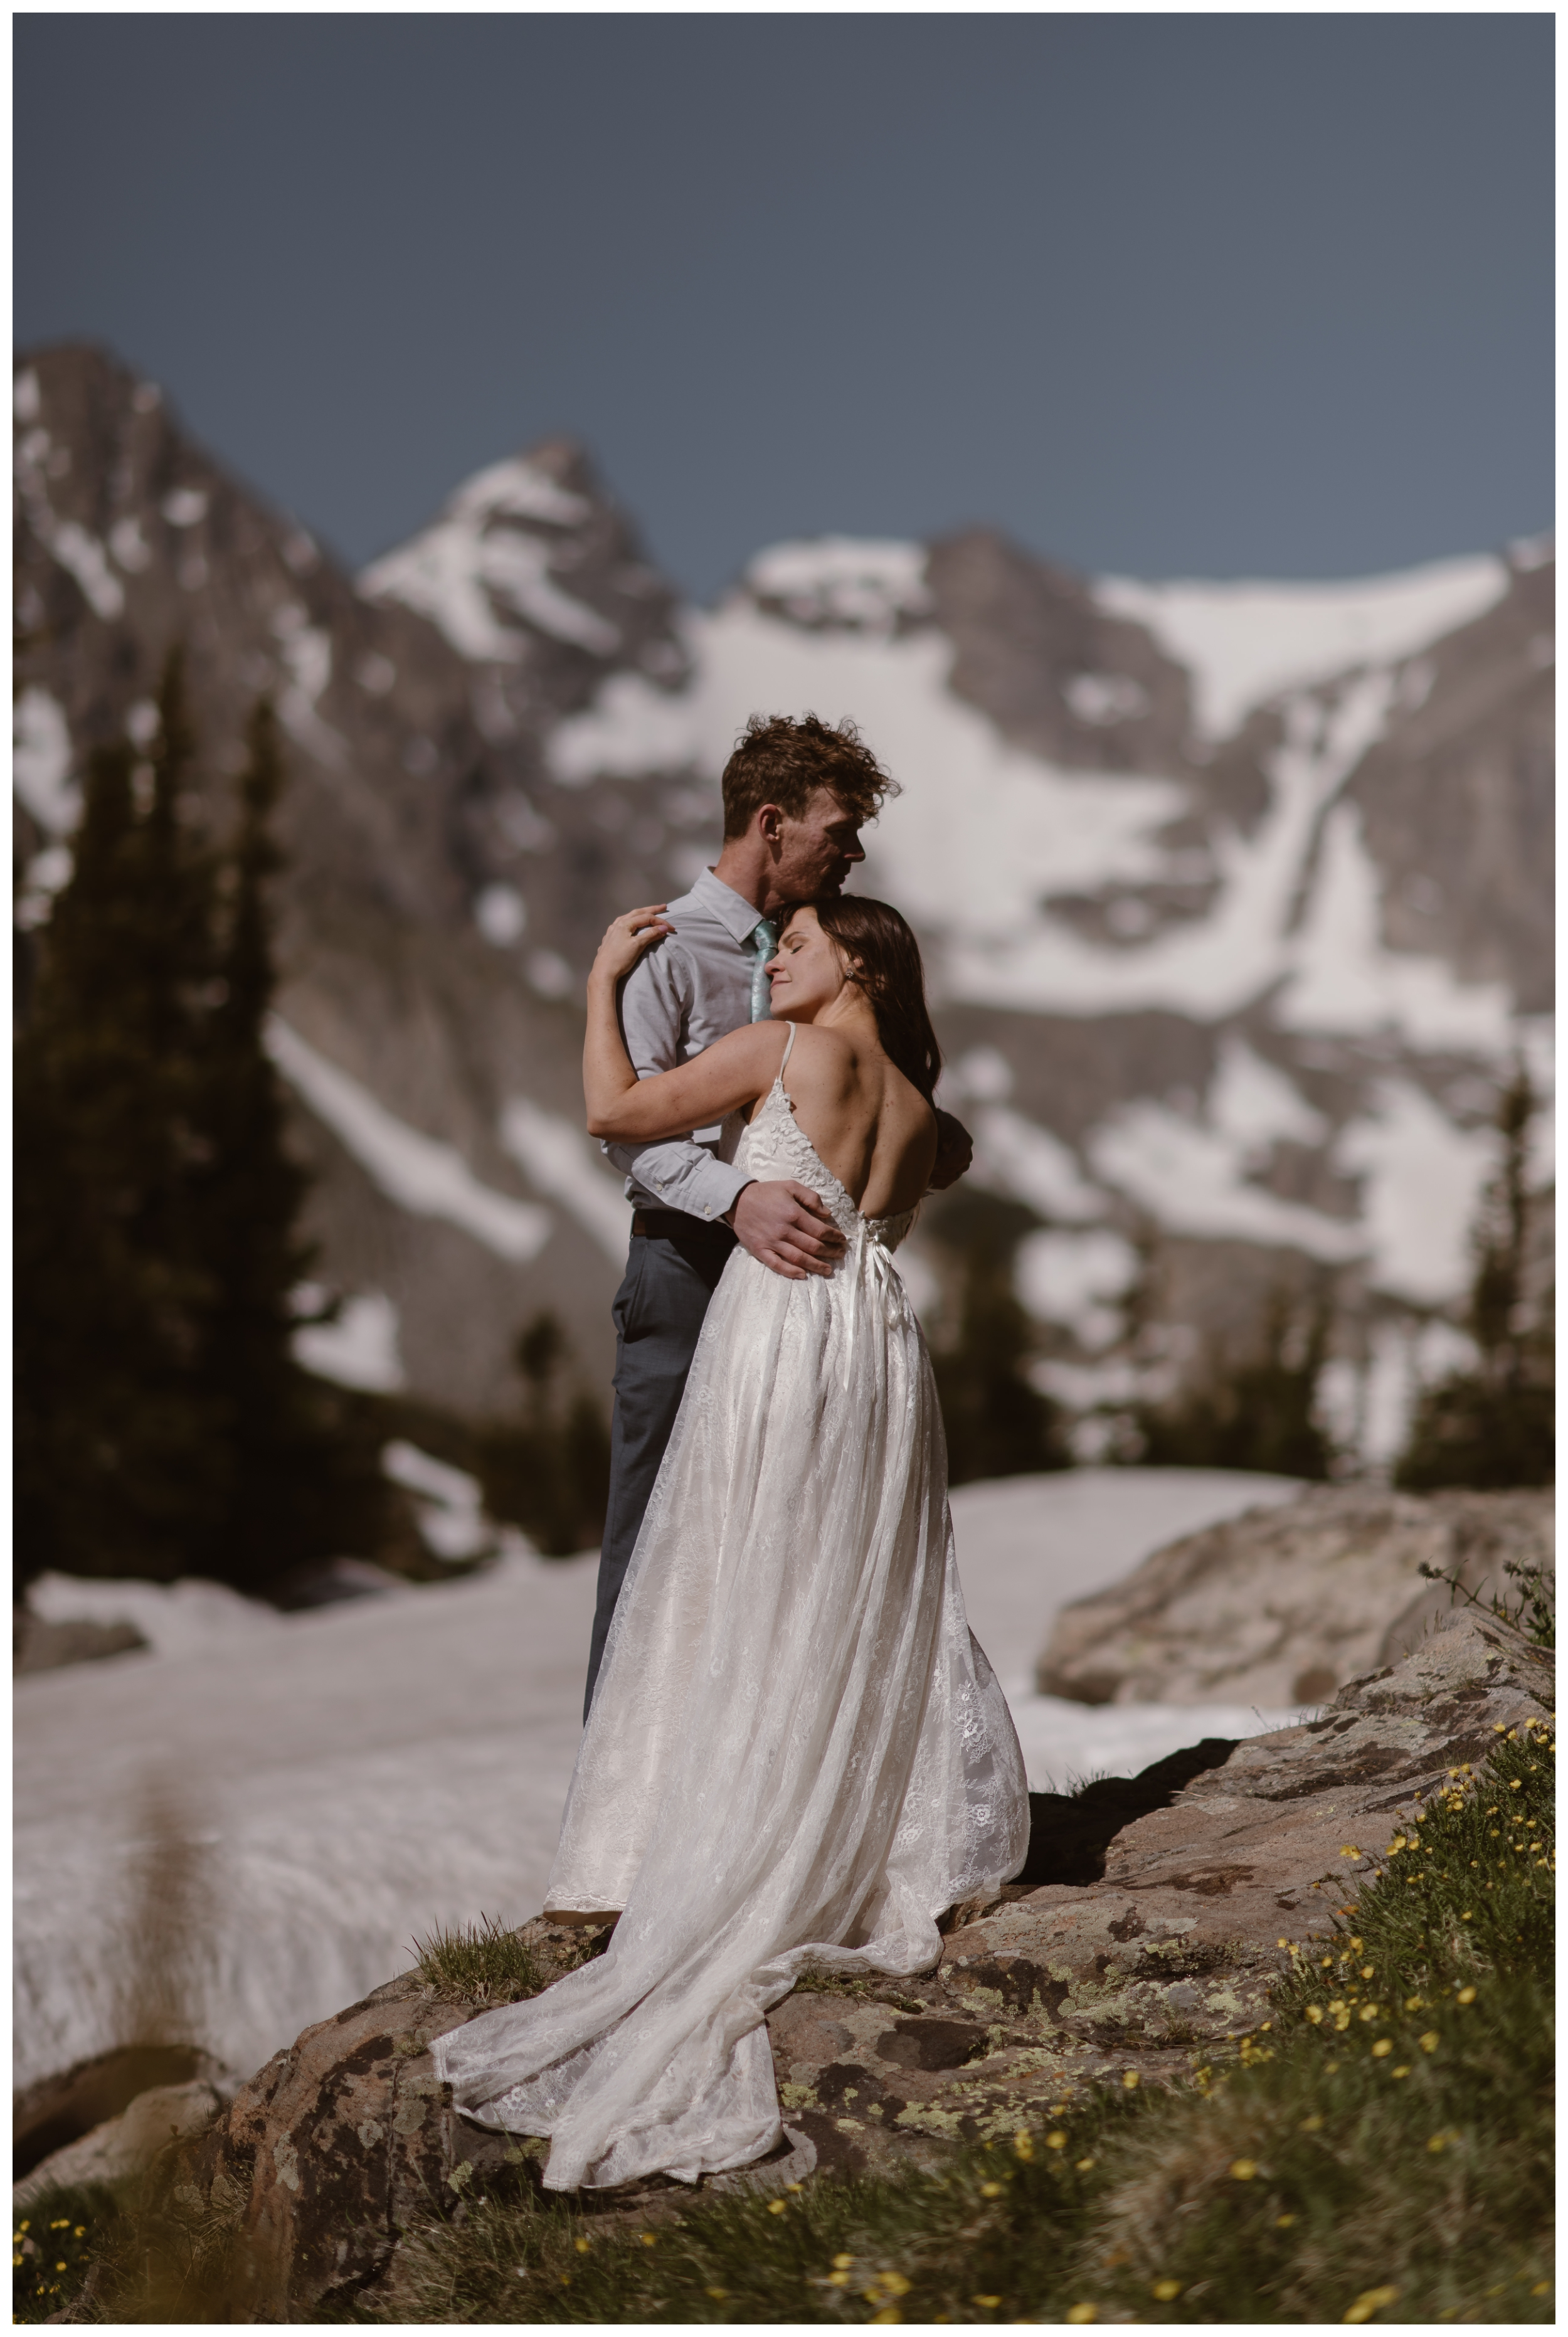 Karen and Matt embrace after they said their vows during a private self solemnizing elopement ceremony at Lake Isabelle, in Nederland, Colorado. Photo by Adventure Instead, Maddie Mae.